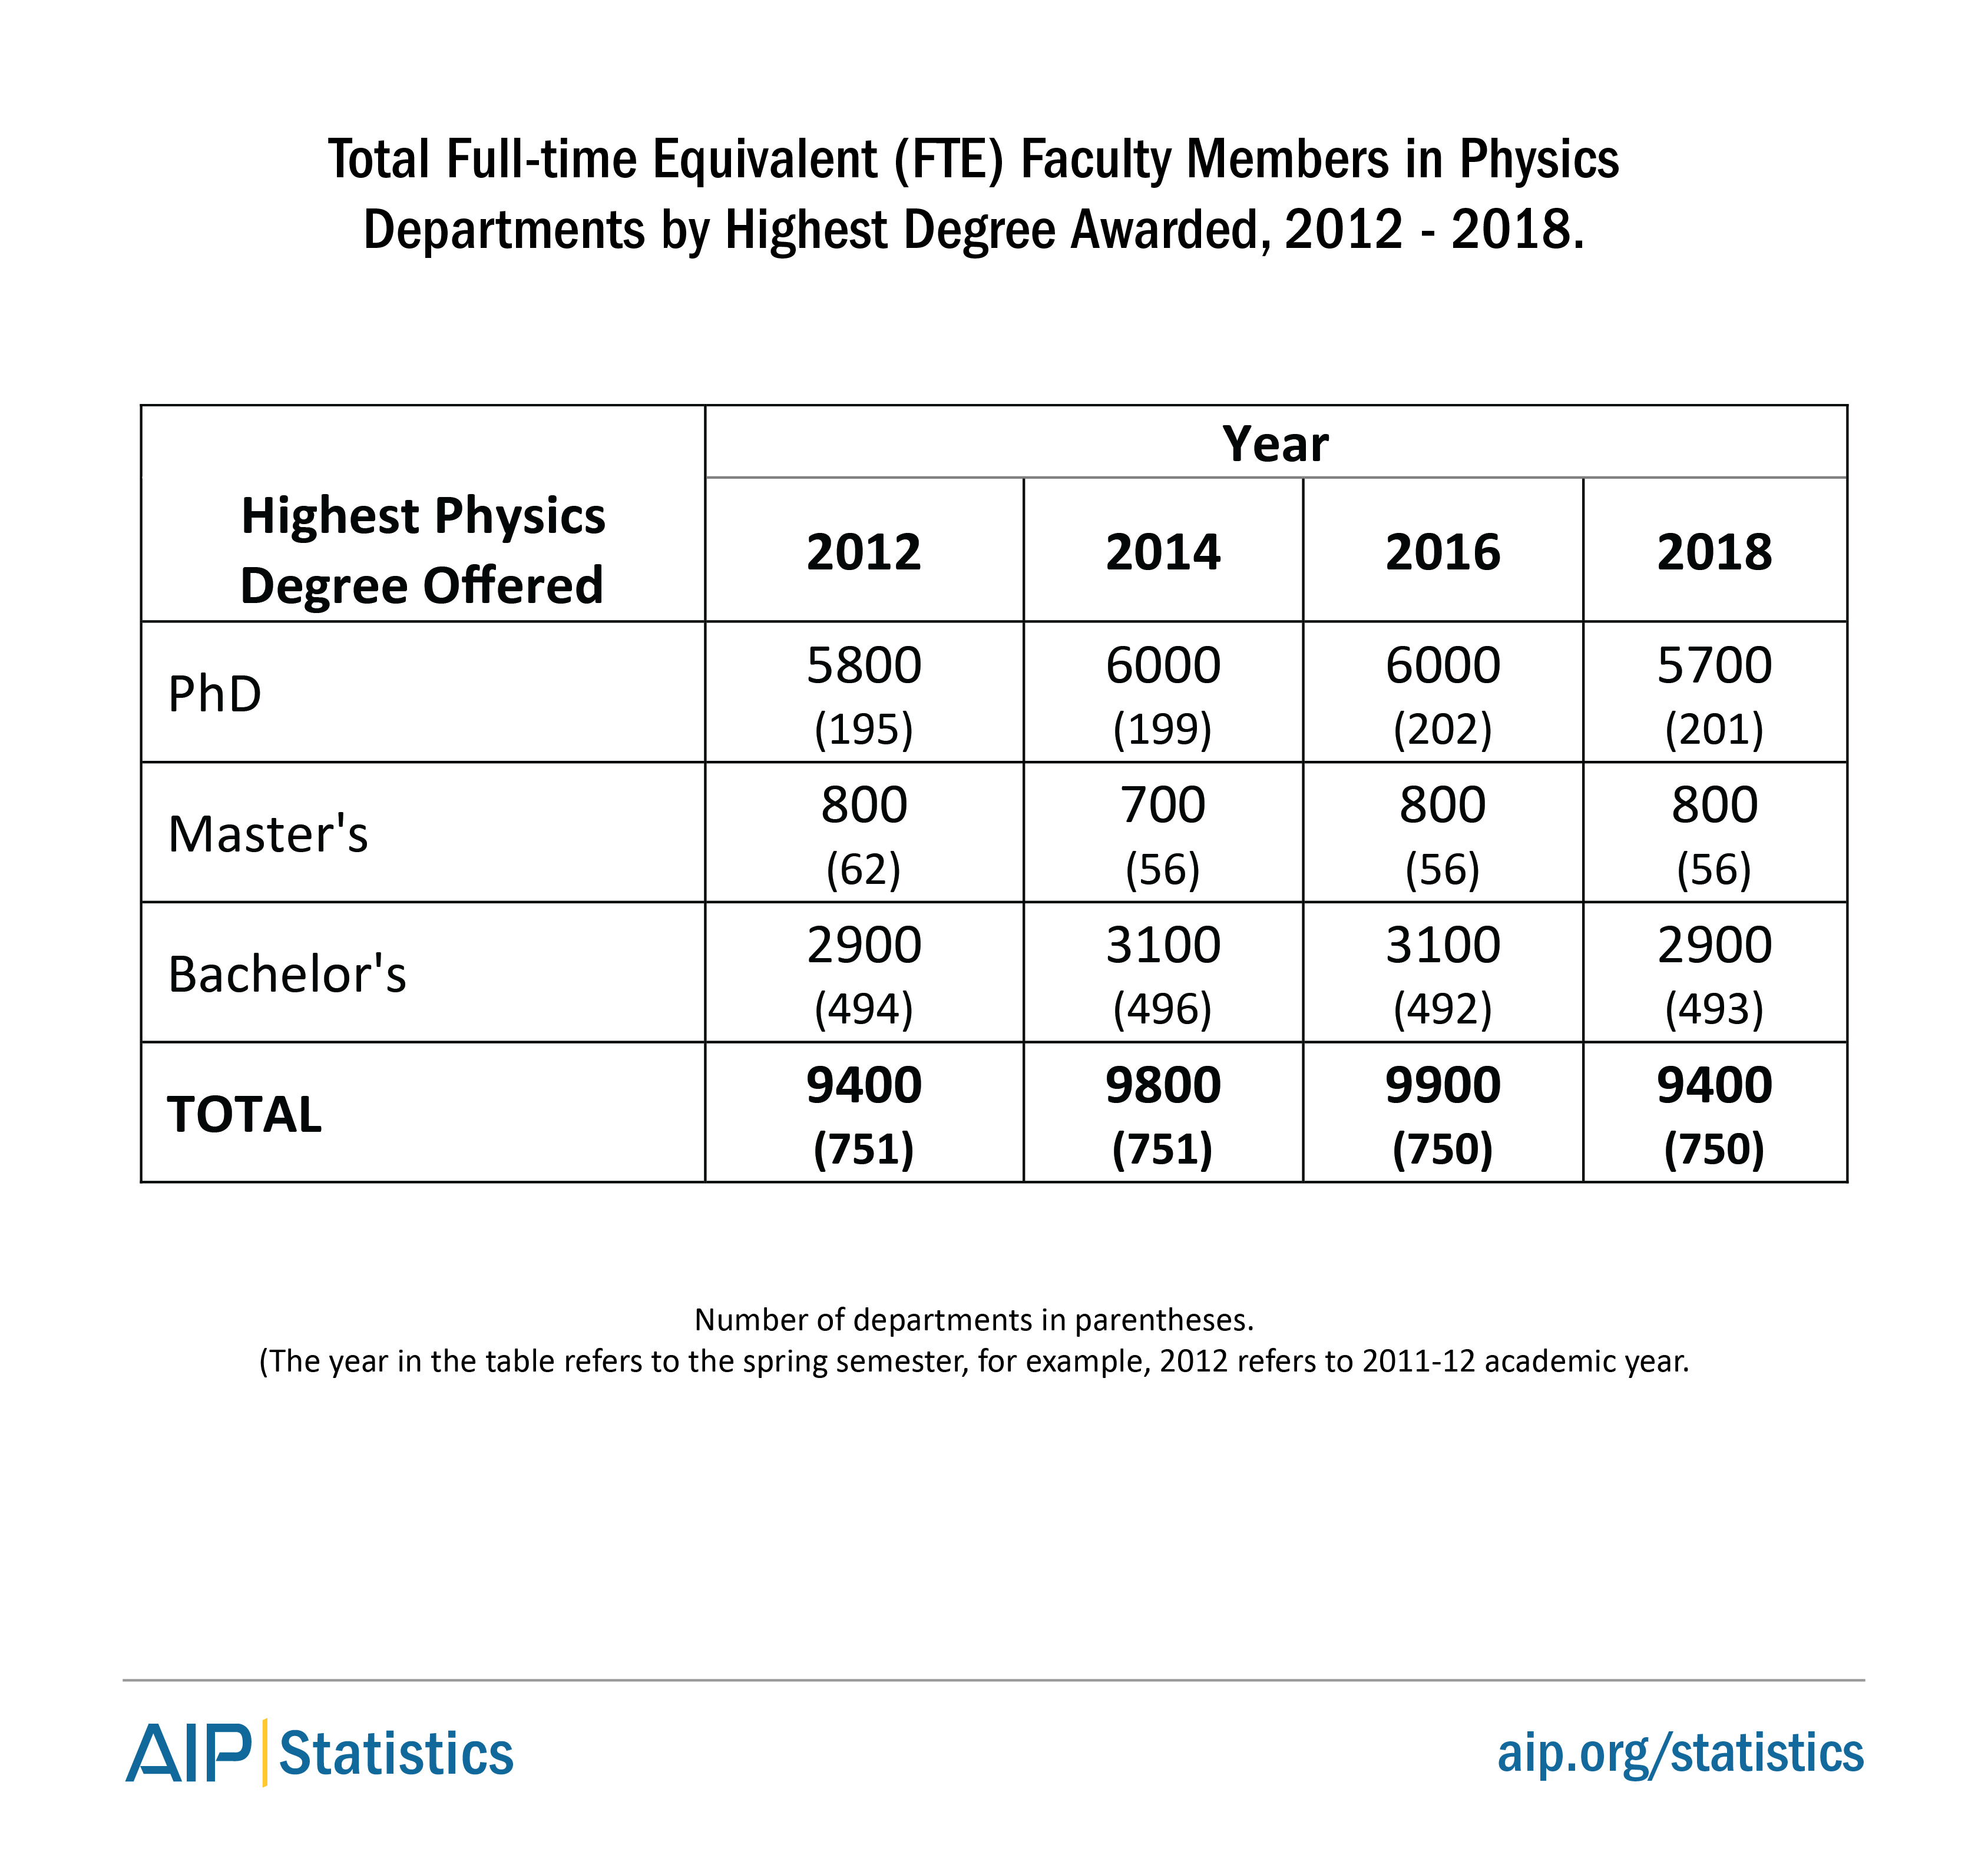 Total Full-Time Equivalent (FTE) Faculty Members in Physics Departments by Highest Degree Awarded, 2012 to 2018